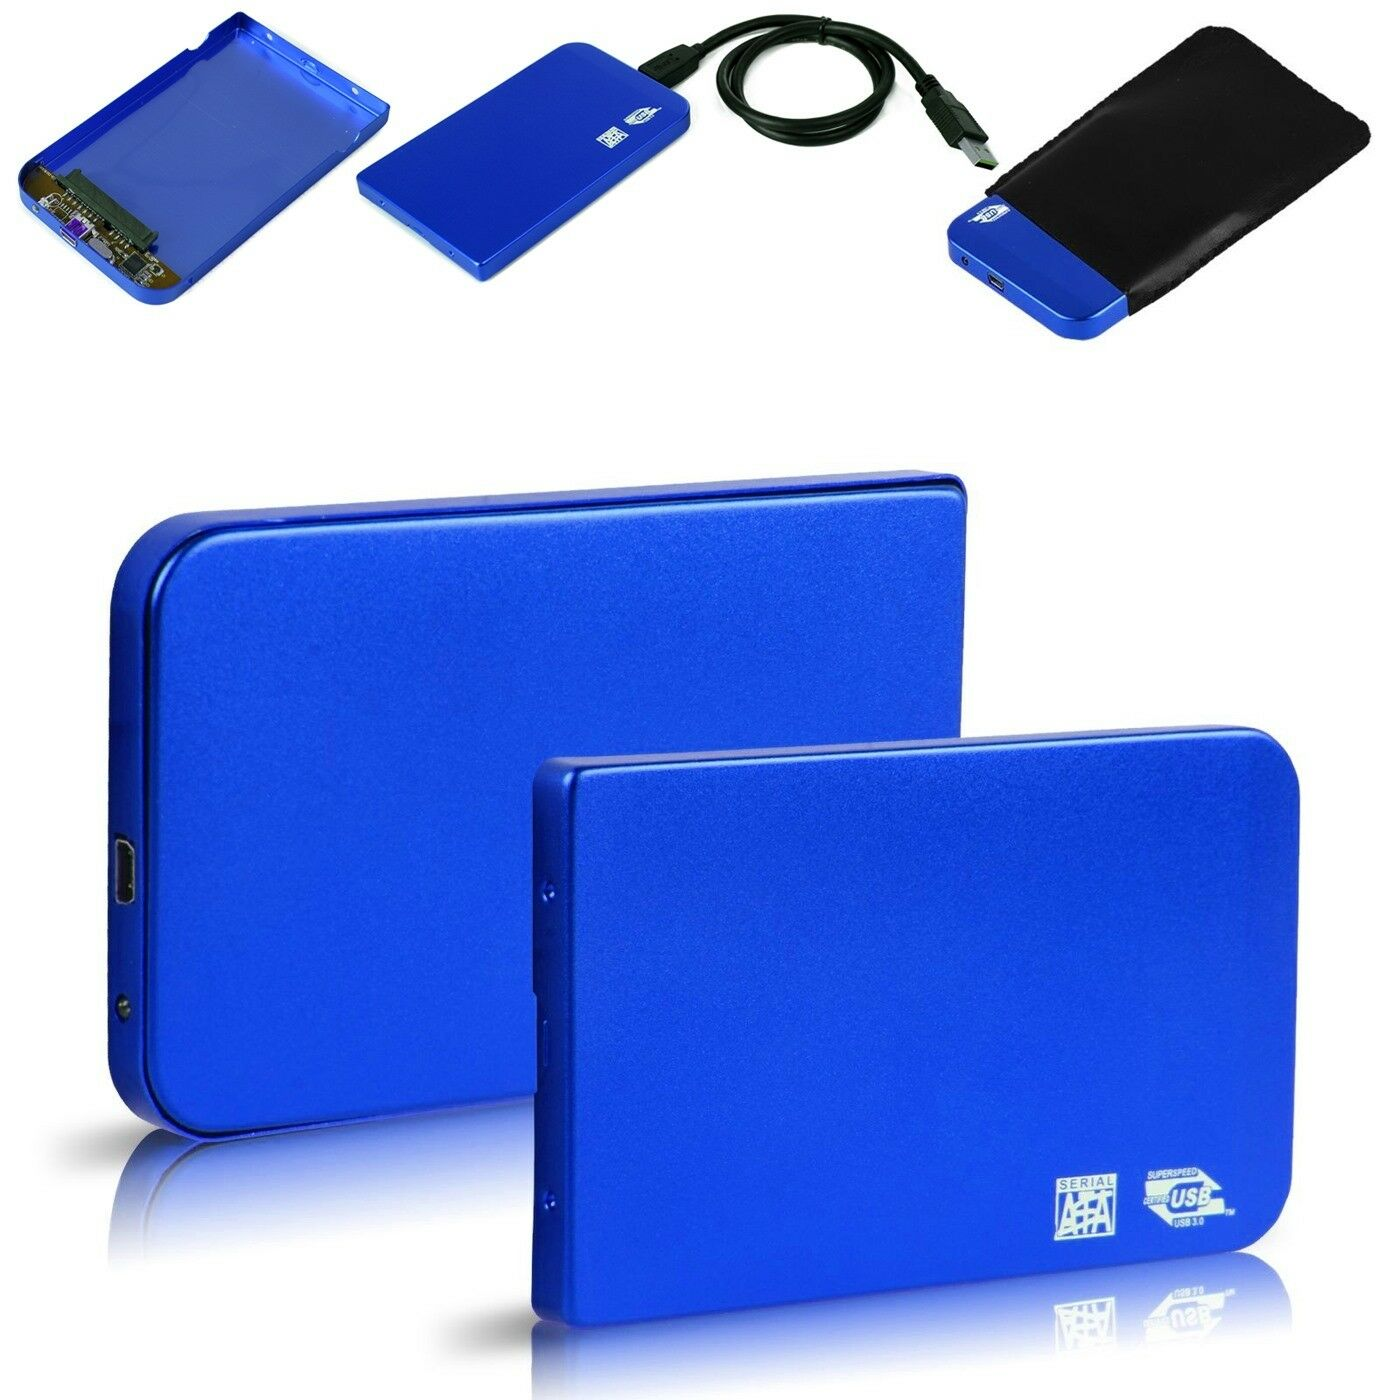 Aluminum 25 Usb 30 Sata Hdd Hard Drive Disk External Case Casing Hardisk Seagate Enclosure Blue 1 Of 7free Shipping See More